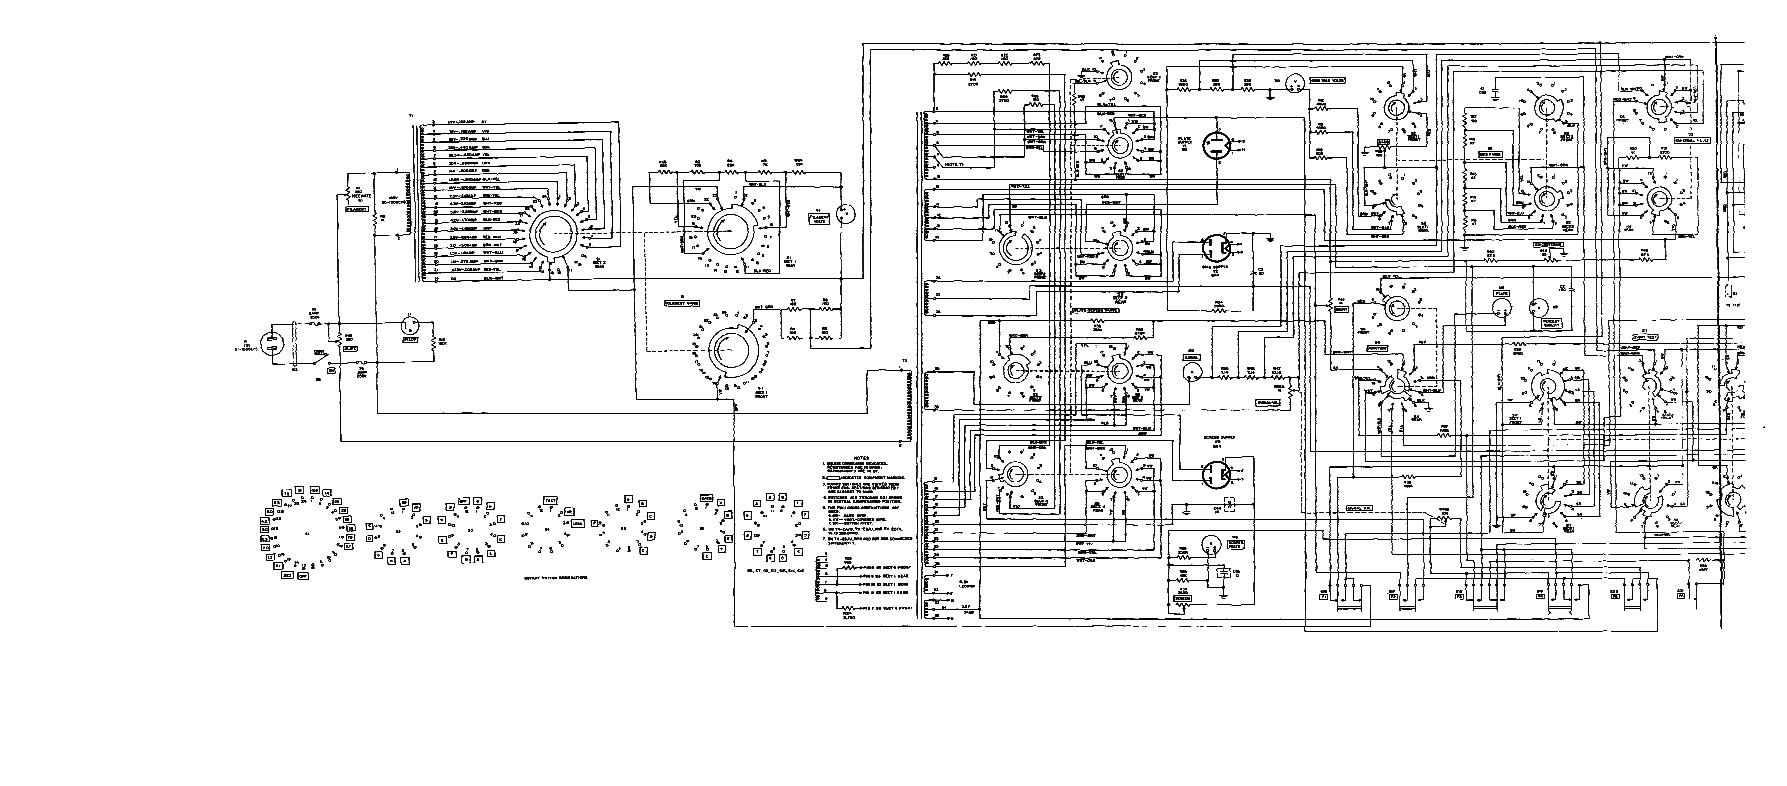 TM 11 6625 316 350054im figure 26 test set, electron tube tv 2(*) u, schematic diagram 316 john deere wiring diagram at n-0.co